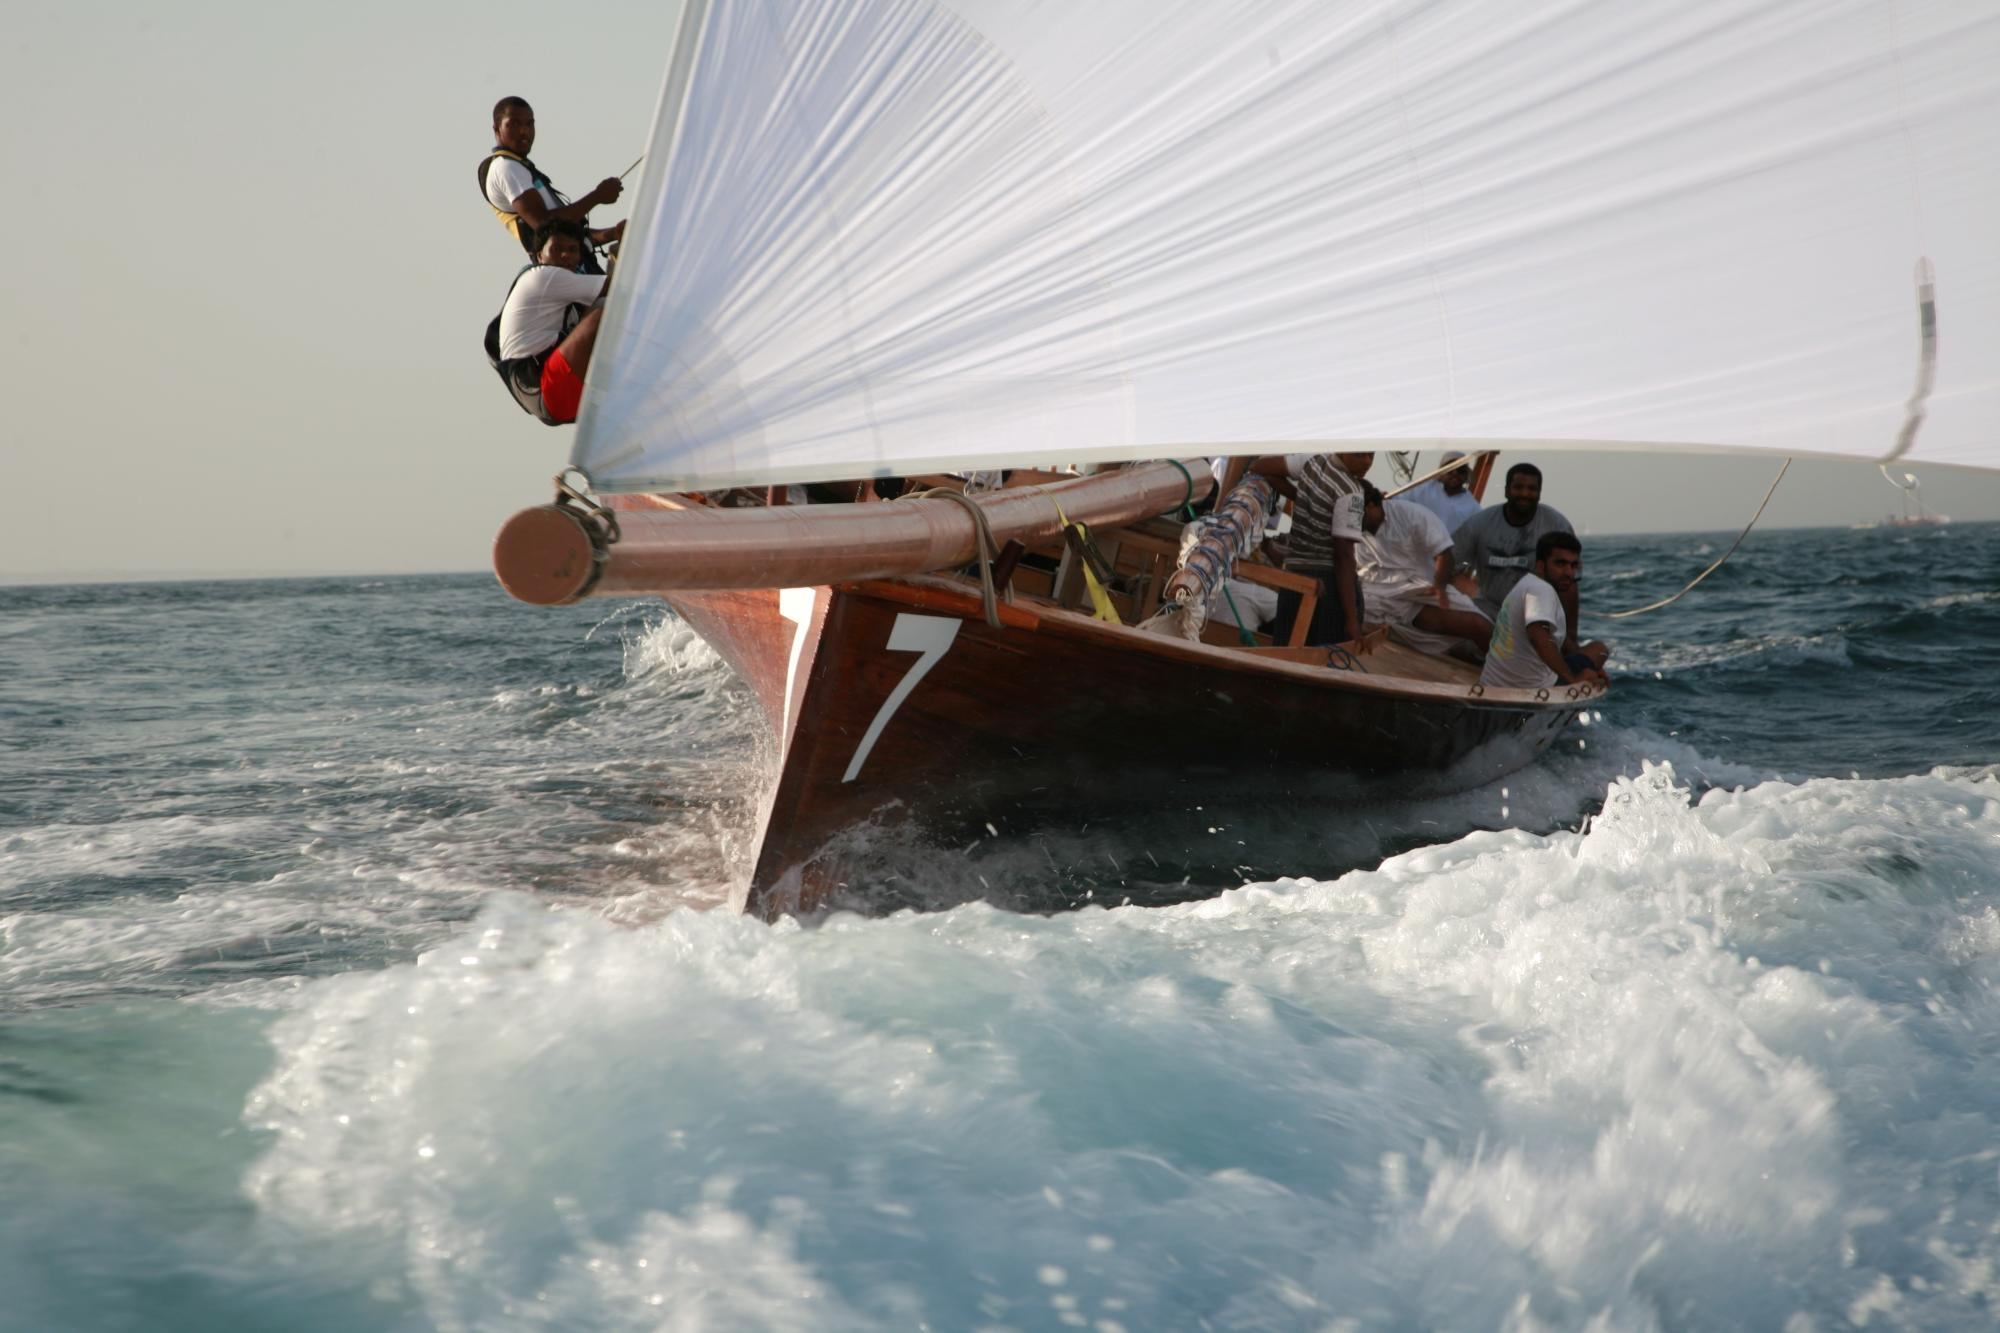 Traditional Dhow Sailing- Dubai 2015